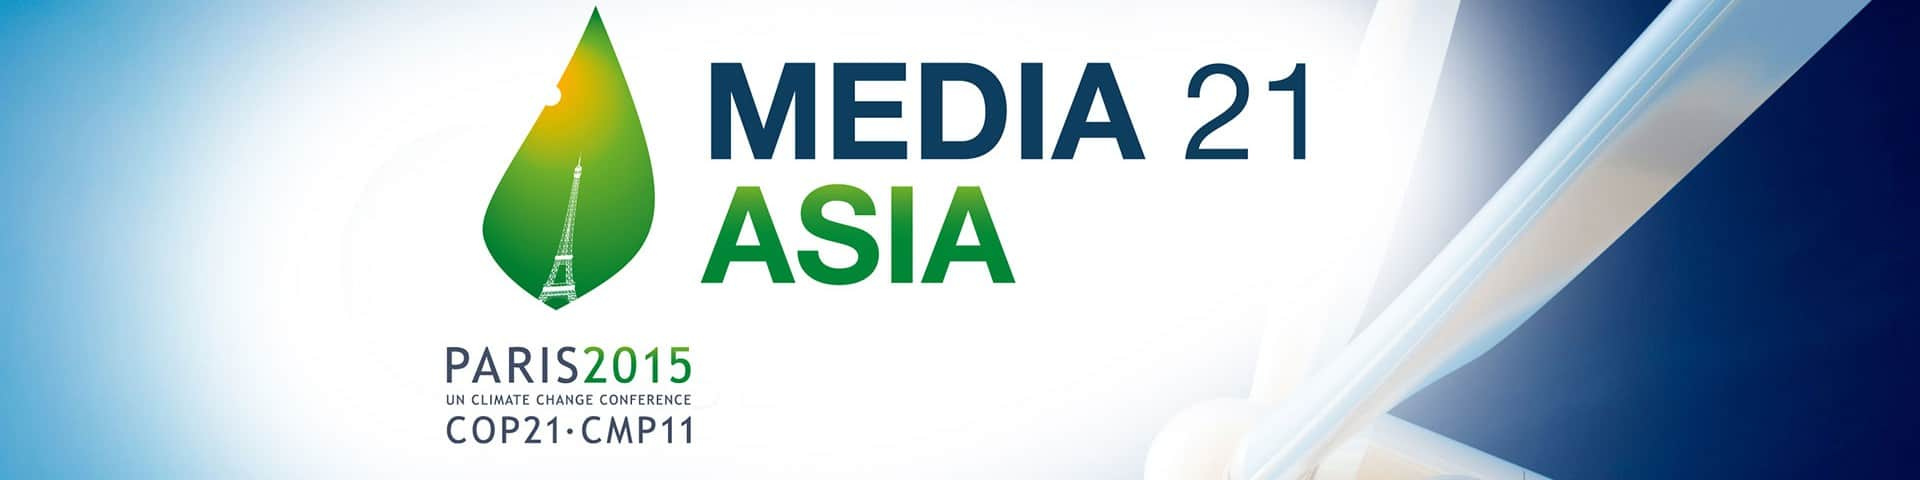 Media 21 Asia: Journalism and climate change